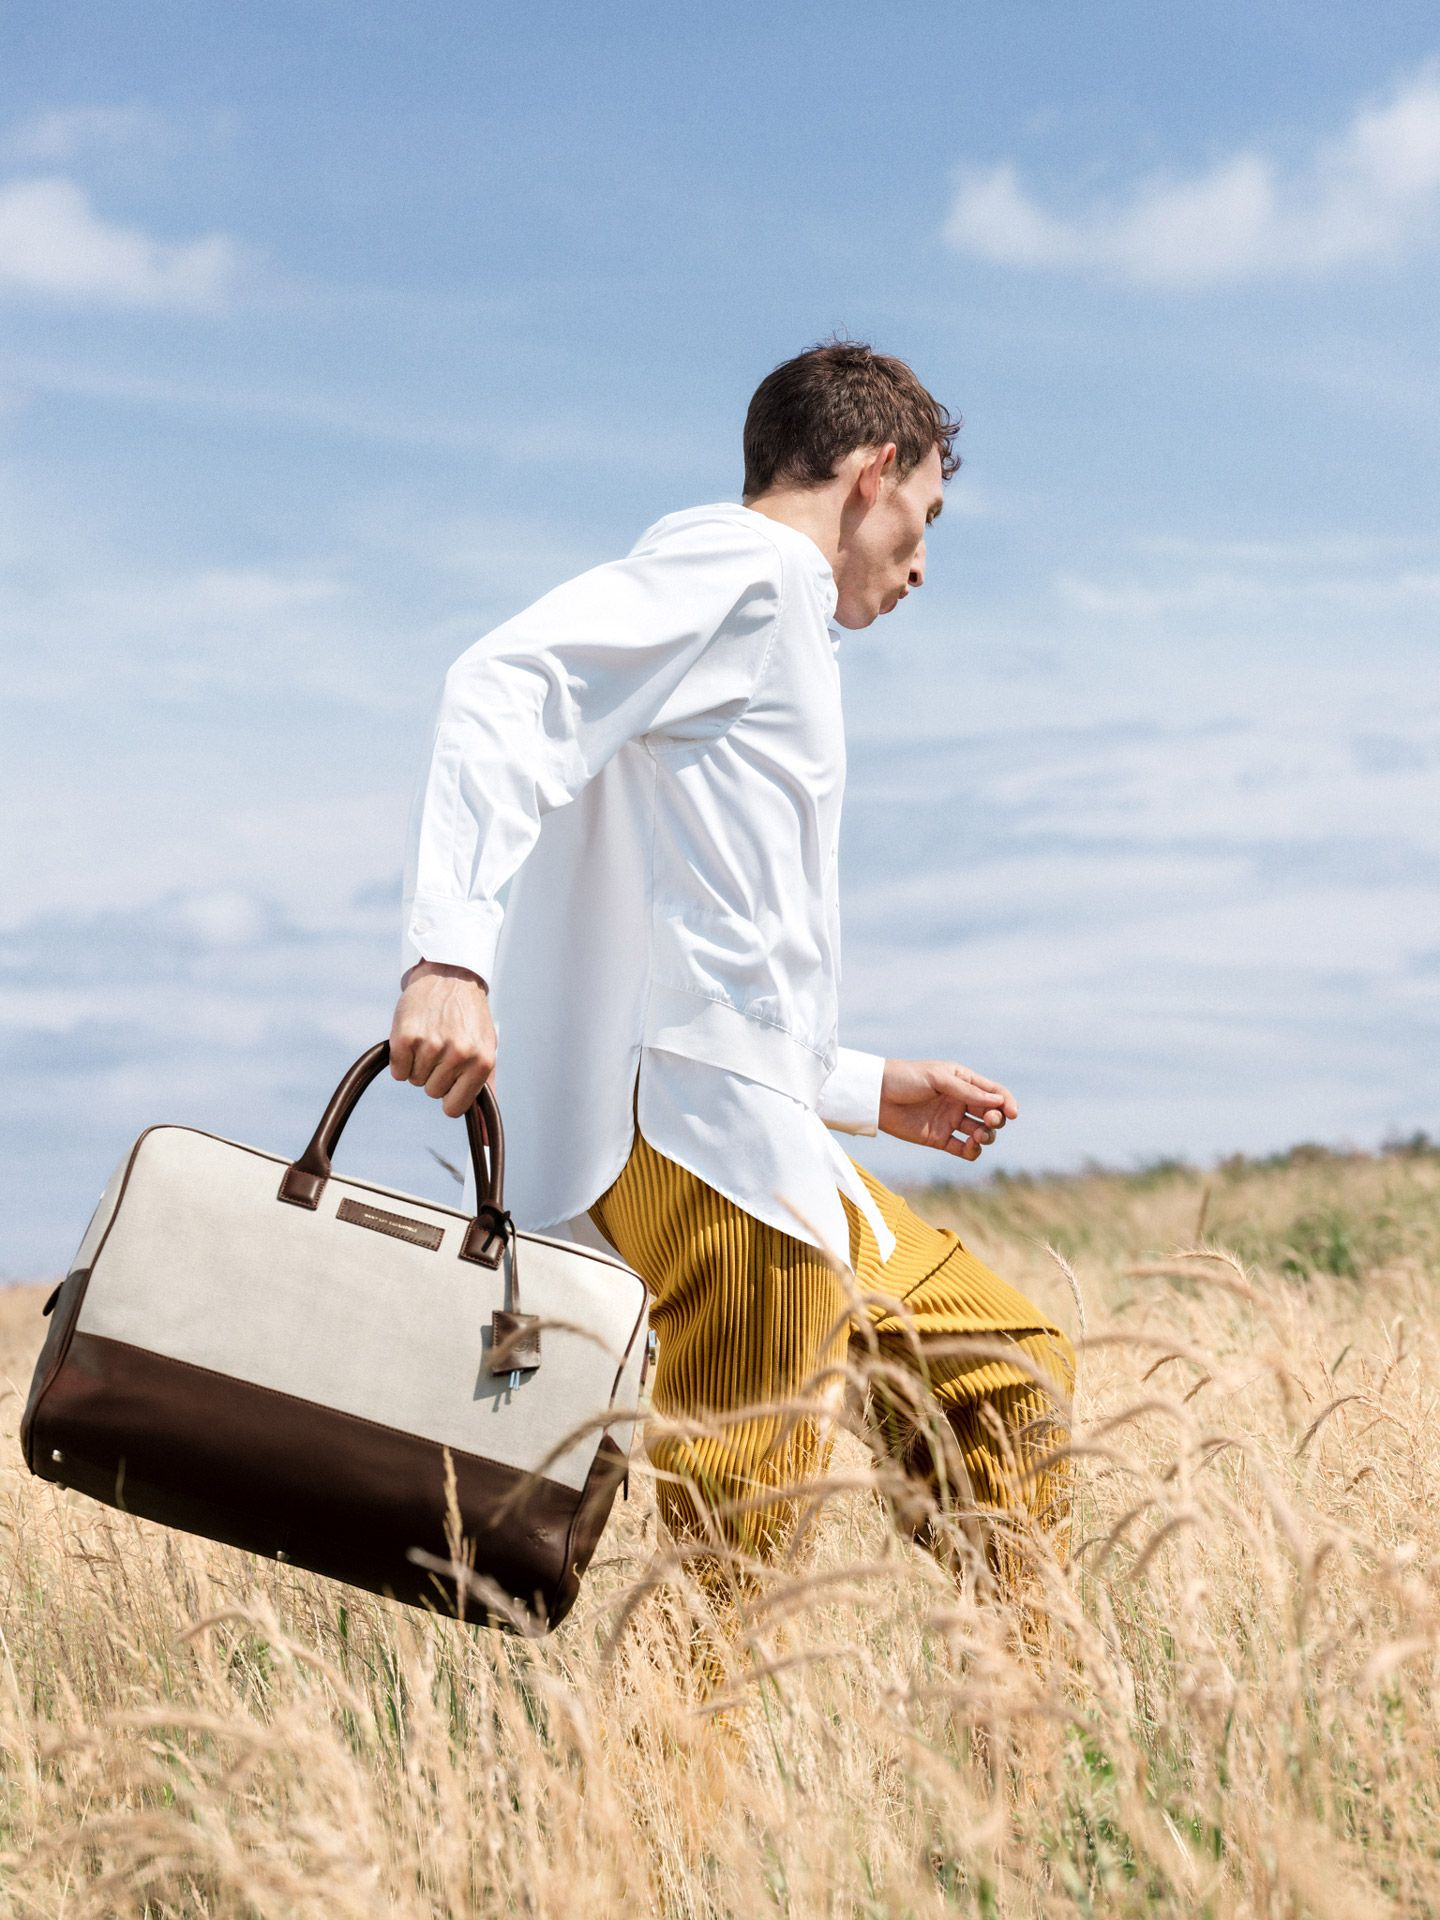 man walking in field holding bag photographed by Alexi Hobbs for Want Les Essentiels Spring Summer 2019 collection